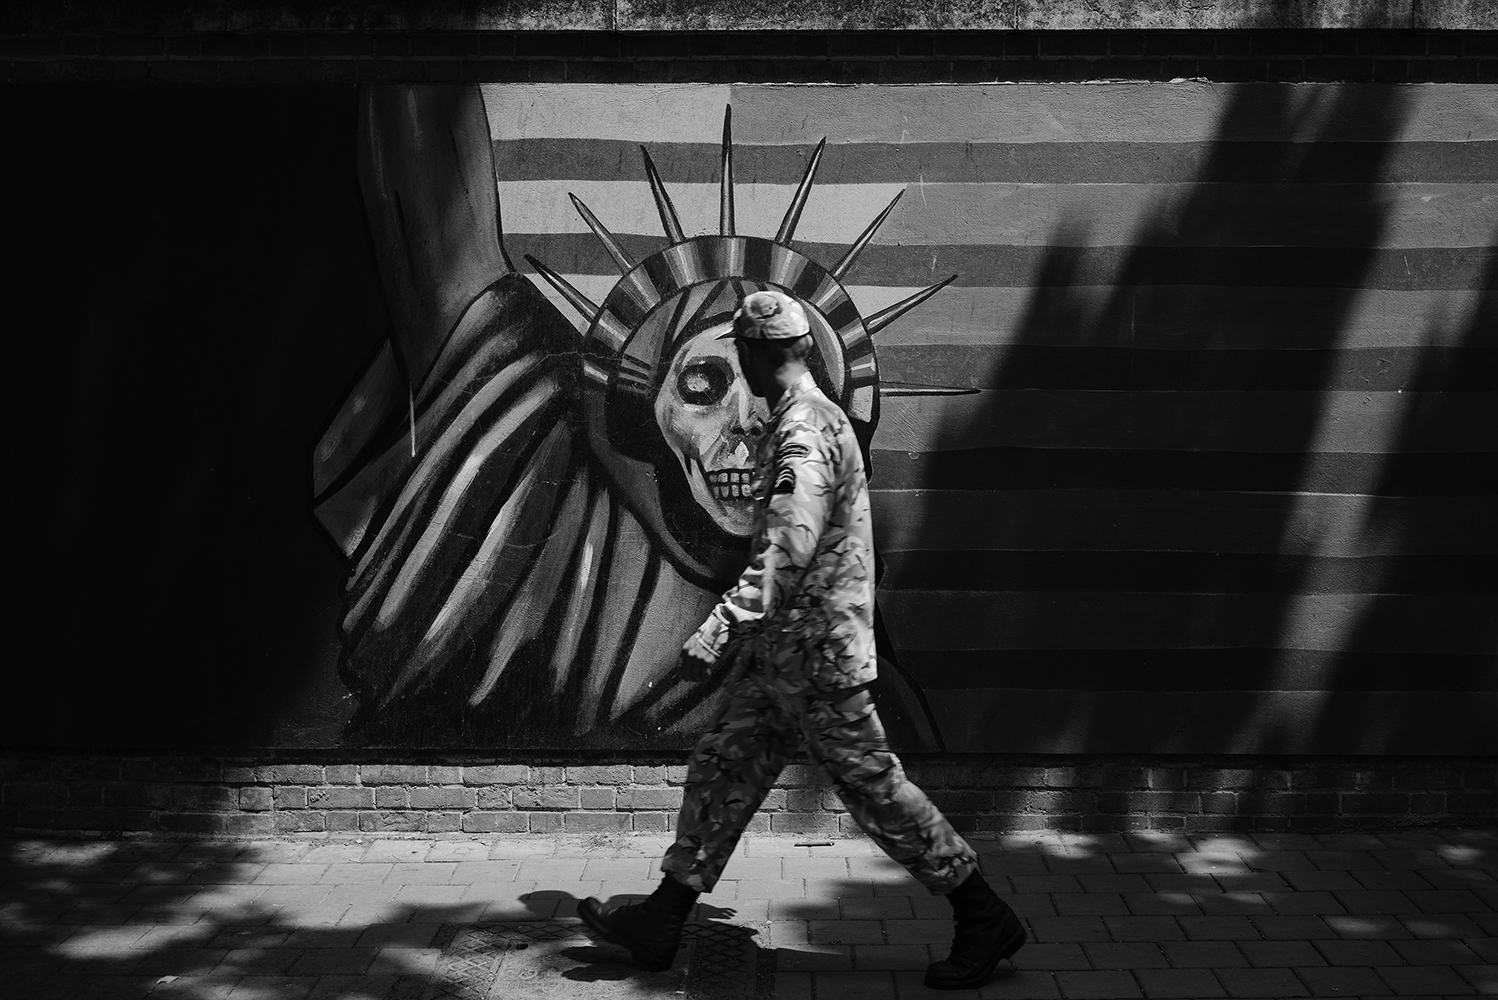 Iranian soldier looking at the Anti-American propaganda mural with an interpretation of the Statue of Liberty, at the former US Embassy 'Den of Espionage', on Talaqani Street in Tehran.  The former US embassy is where the 1953 coup that brought down Mohammad Mossadegh was orchestrated. During the Islamic revolution 1979, students who feared a repeat coup stormed the embassy and held 52 diplomats hostage for 444 days.